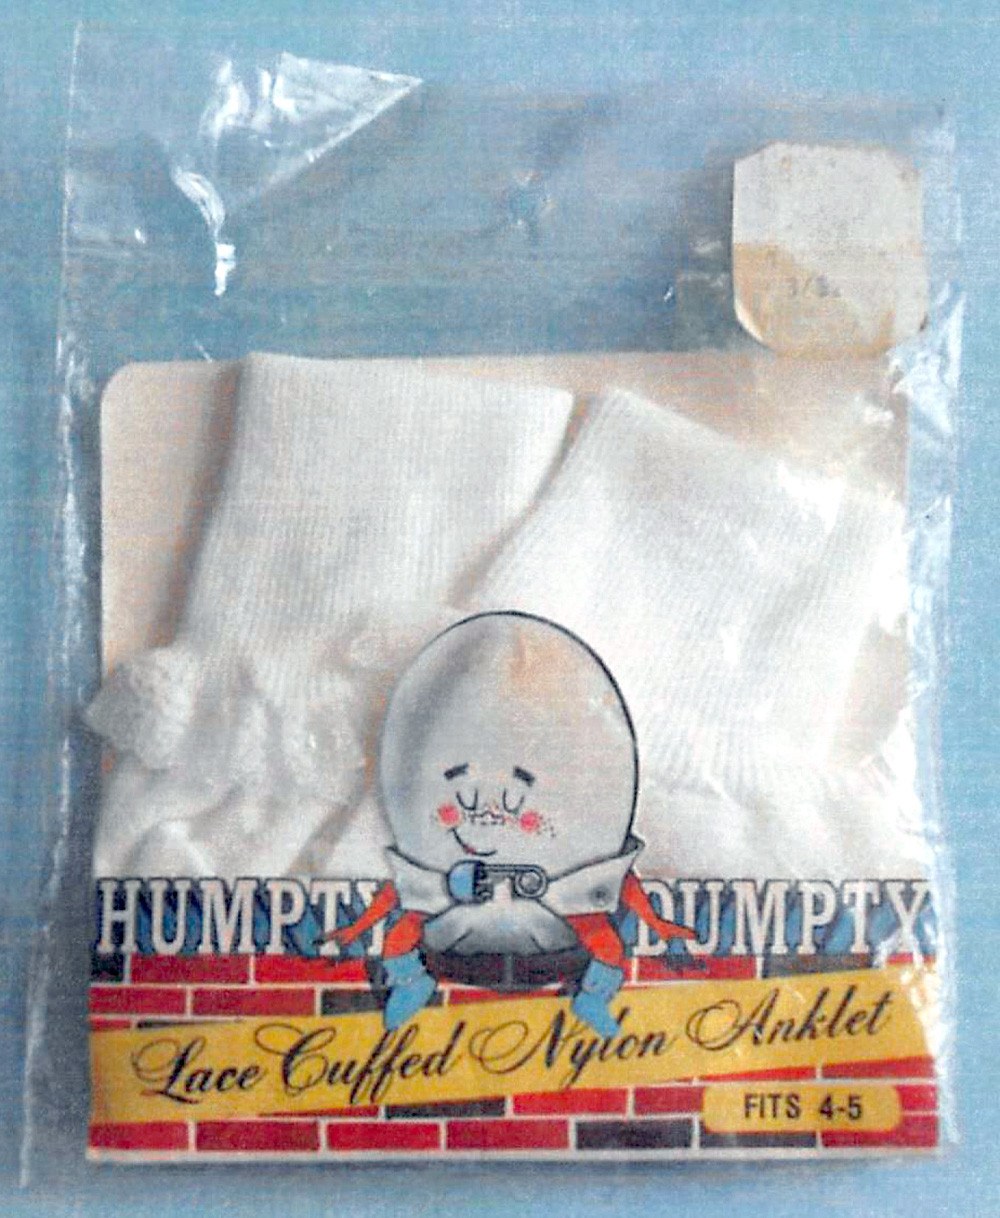 HUMPTY DUMPTY hosiery was a famous brand name manufactured by Sanda Hosiery.